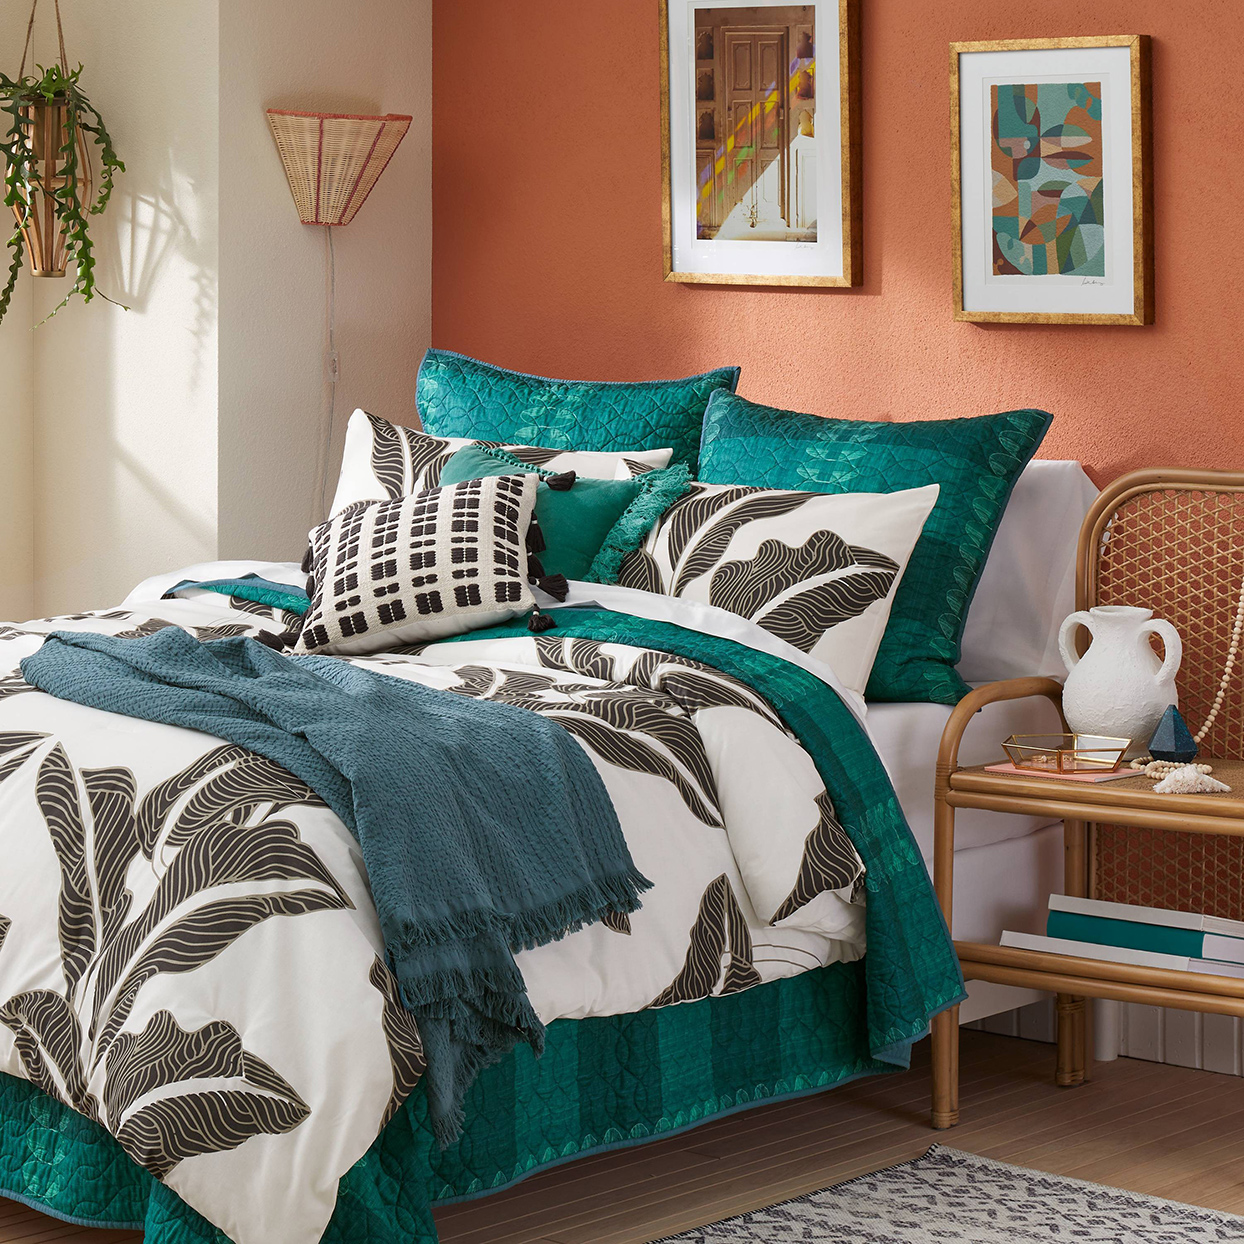 colorful decorated bedding with leaf pattern print from Jungalow collection at Target